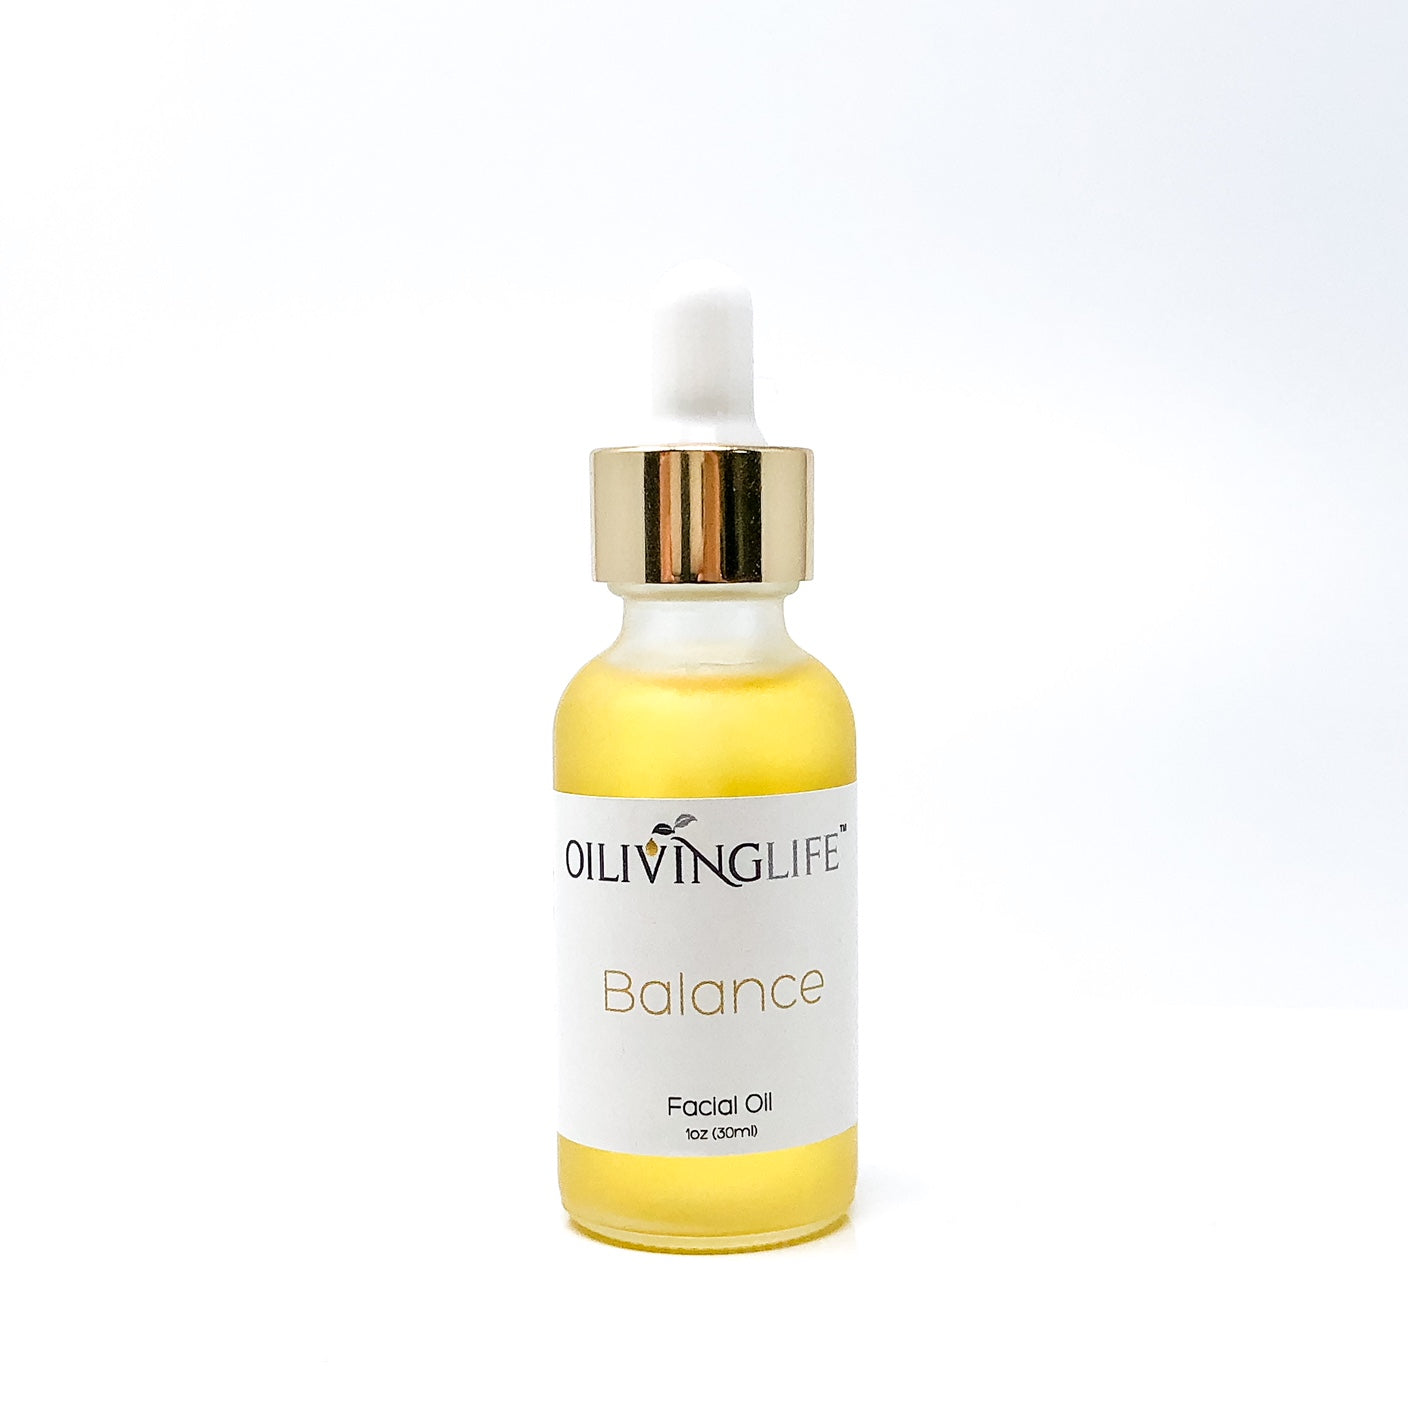 Balance Facial Oil - OilivingLife